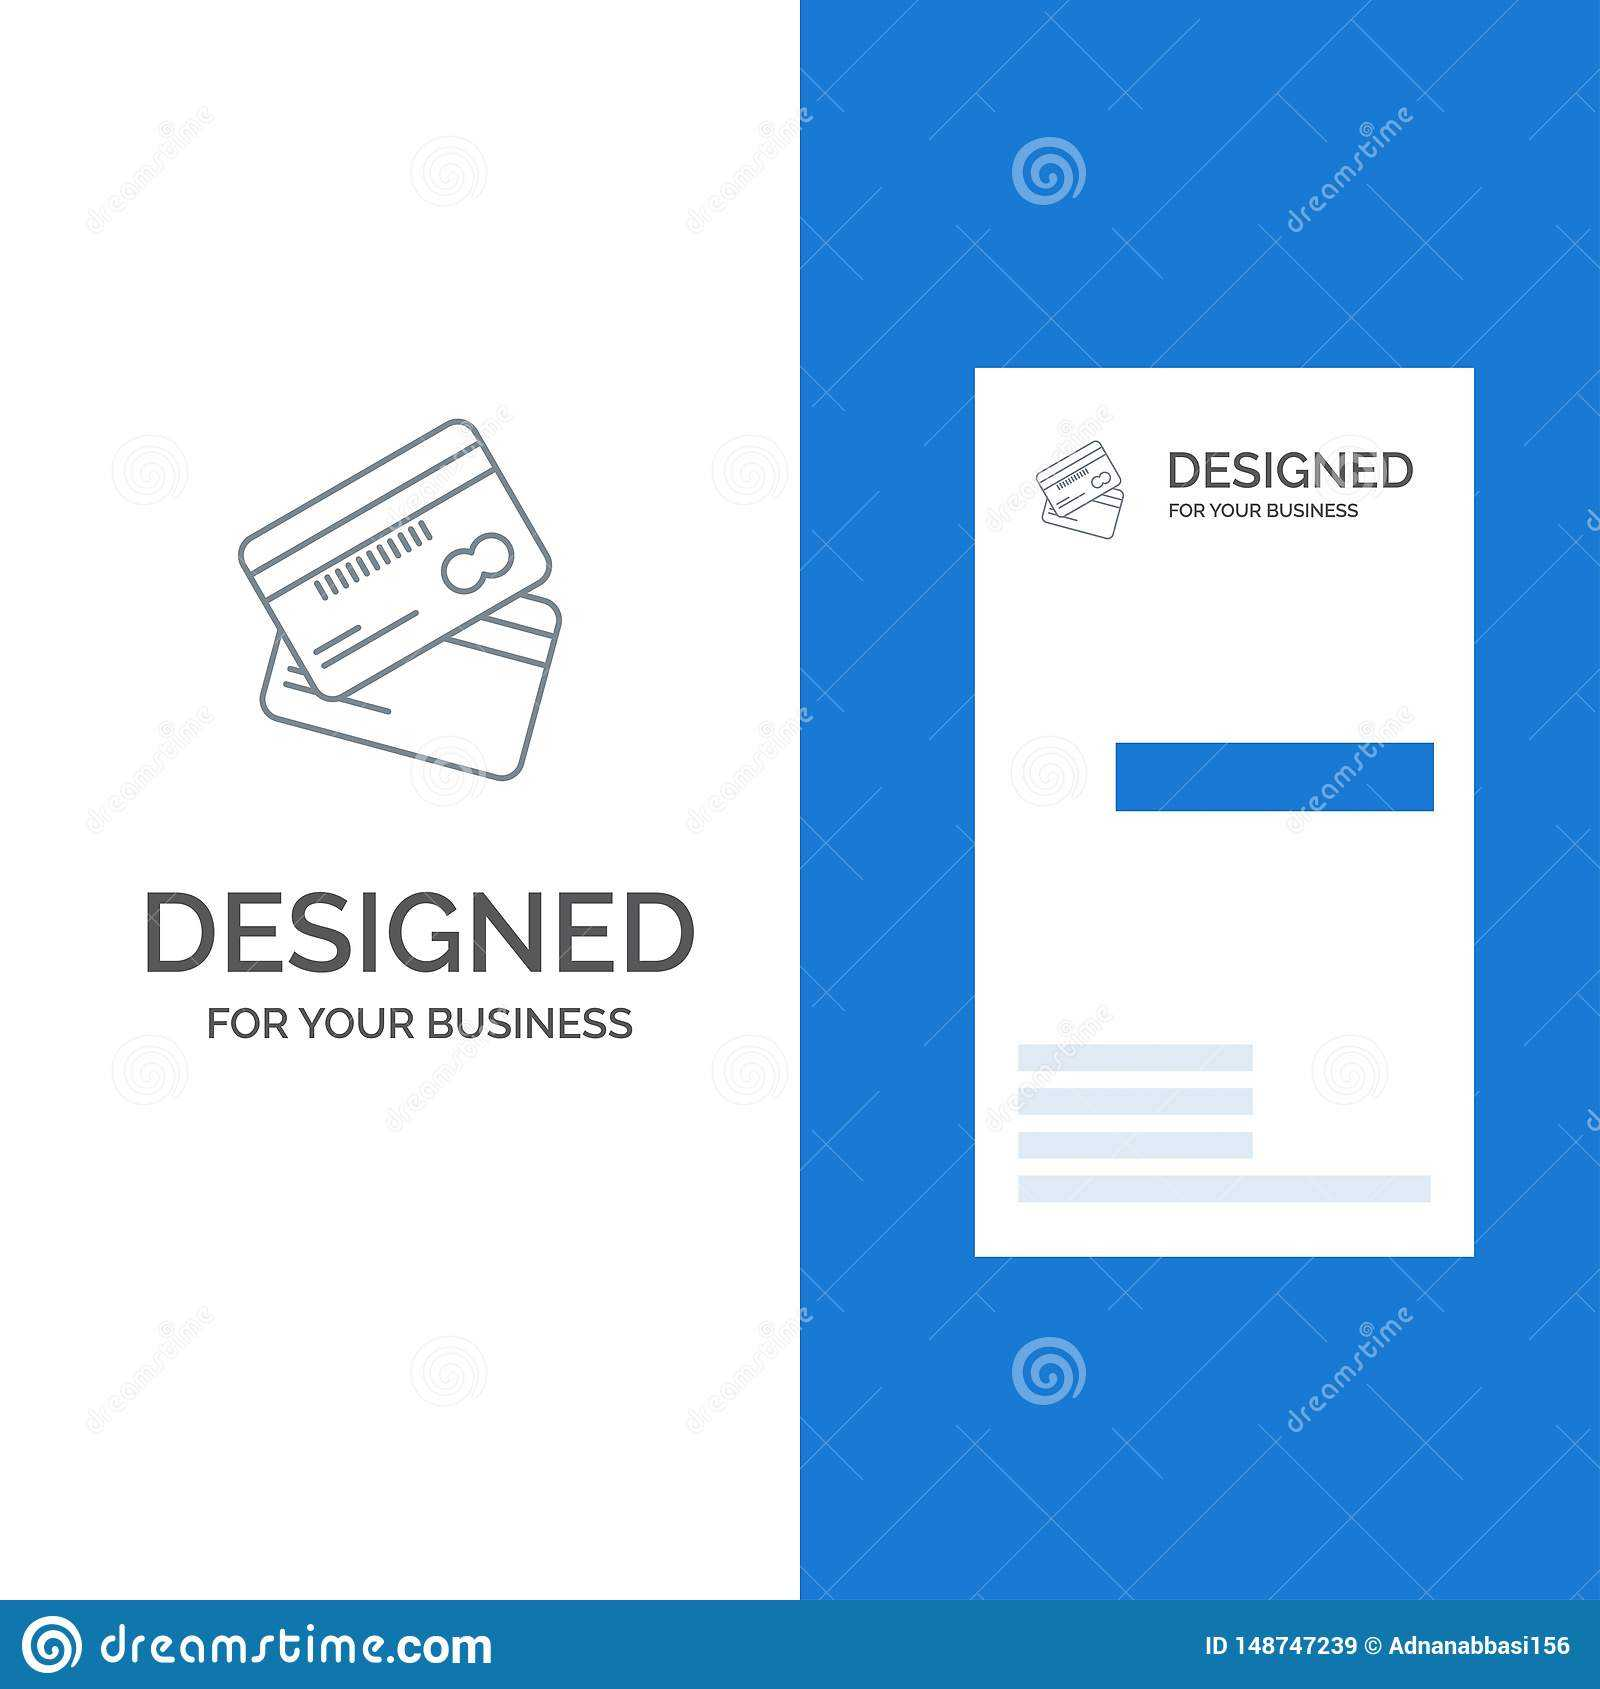 Credit Card, Business, Cards, Credit Card, Finance, Money With Credit Card Templates For Sale